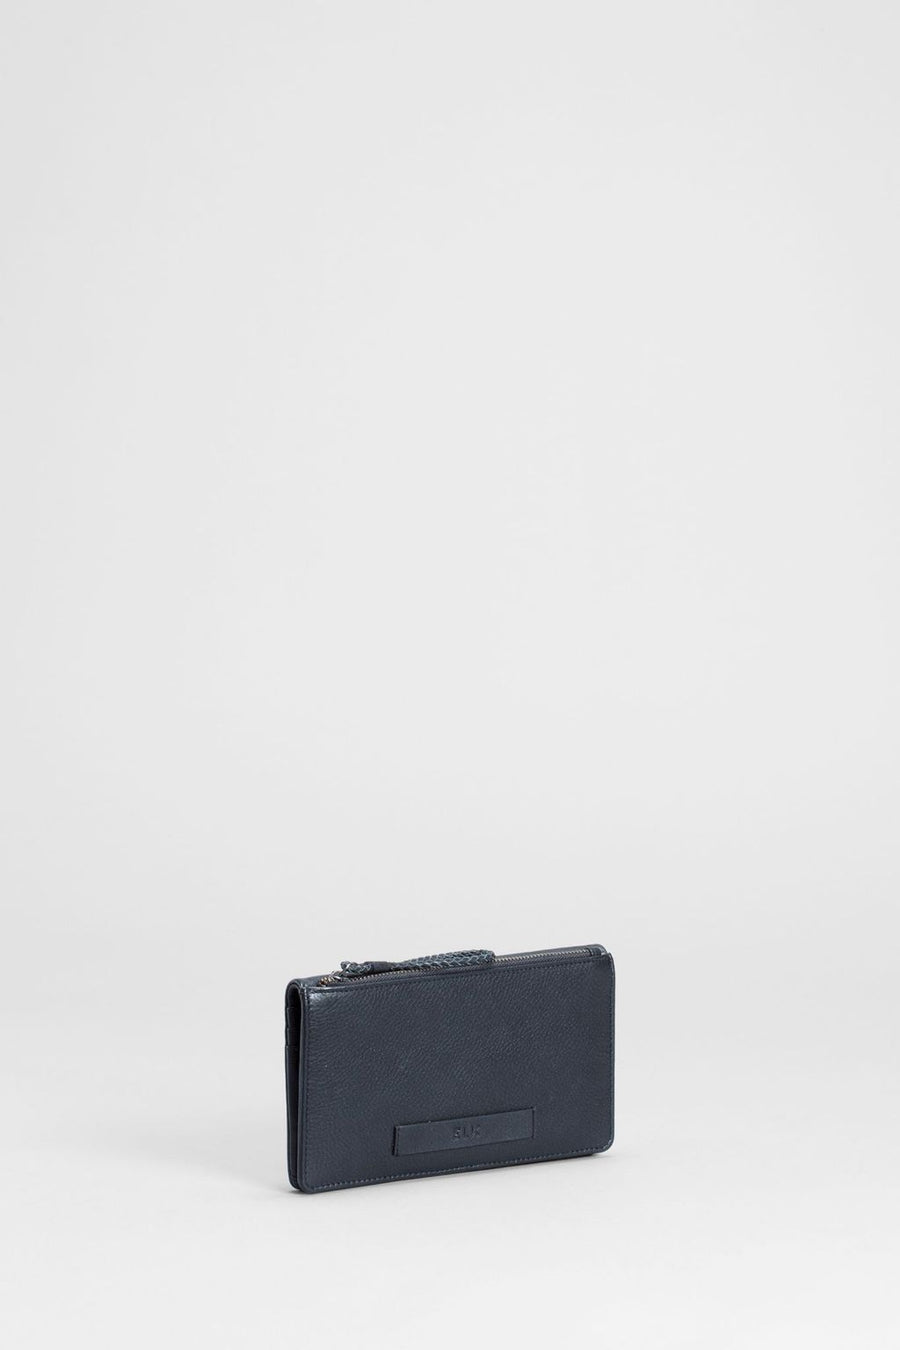 Hede Wallet - Black - Shop Online At Mookah - mookah.com.au